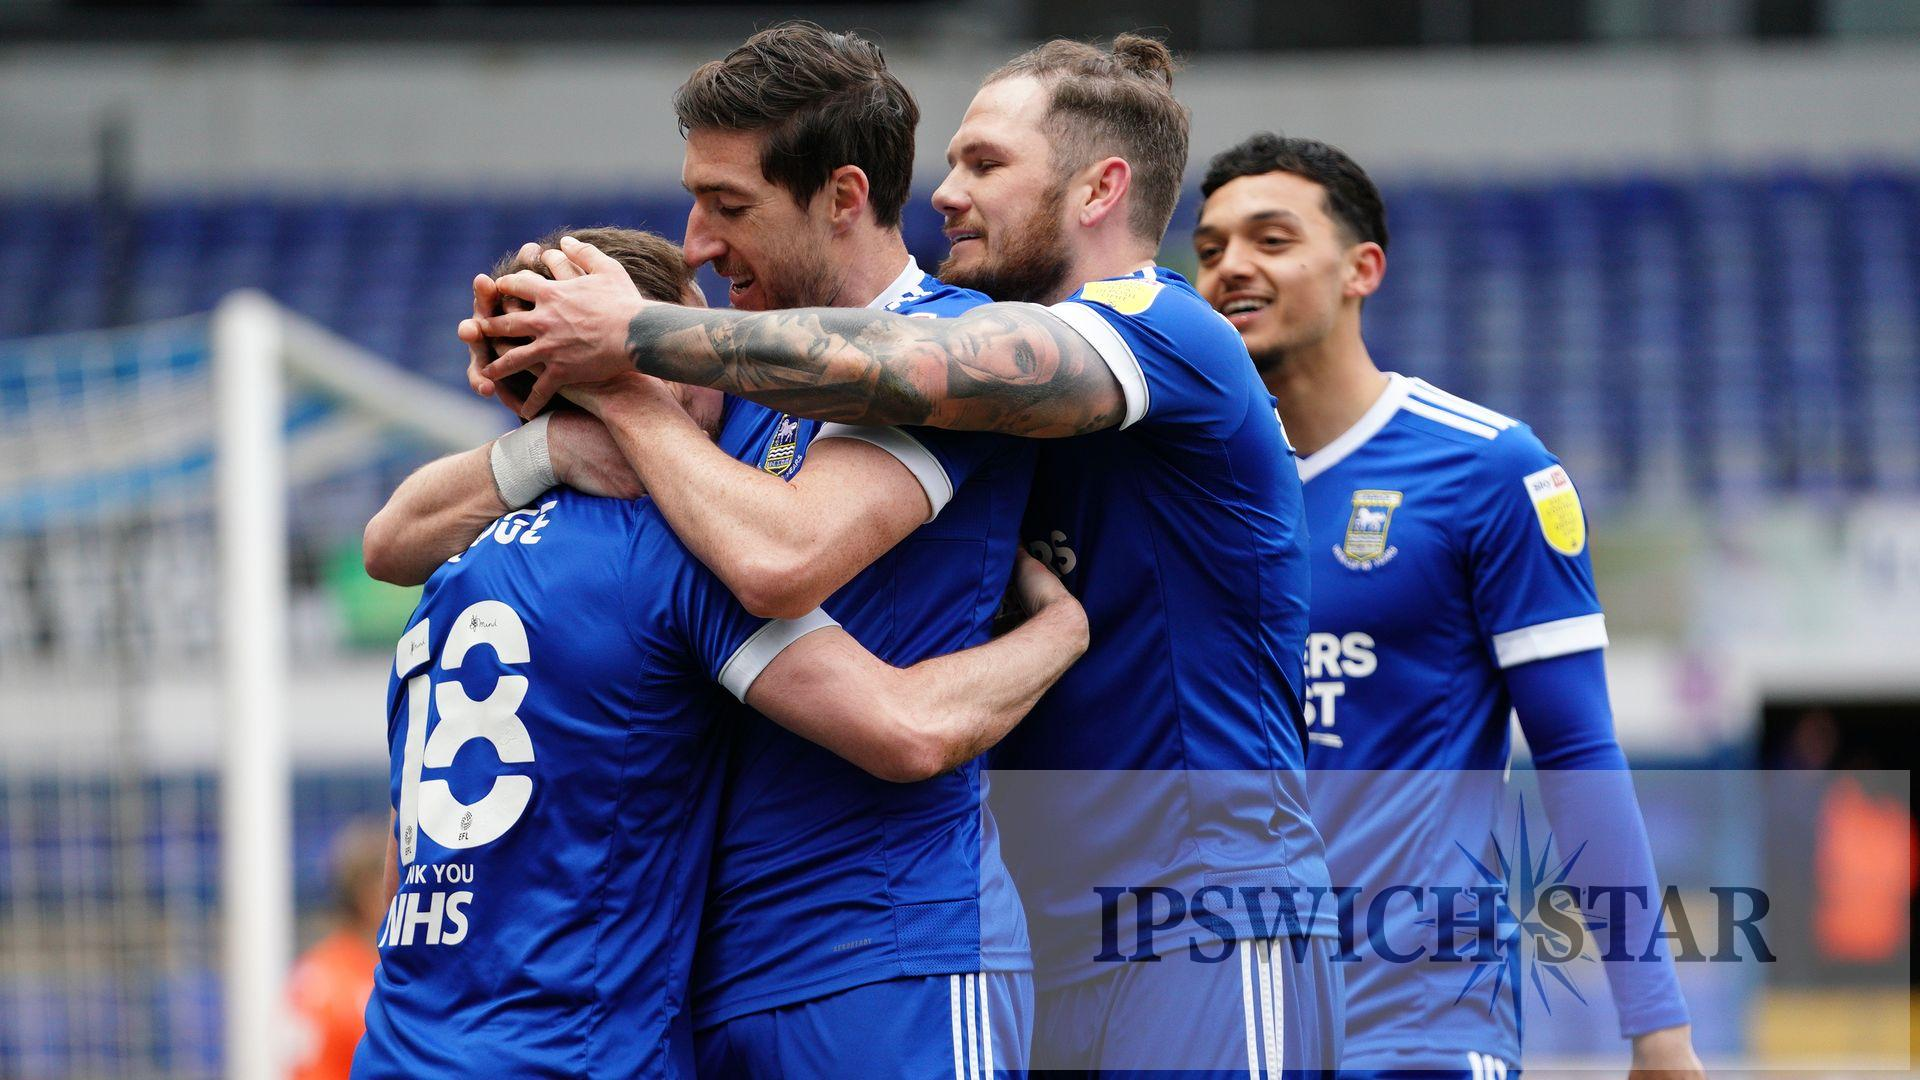 New owners bounce? Big players back? - Talking points ahead of Ipswich Town v MK Dons